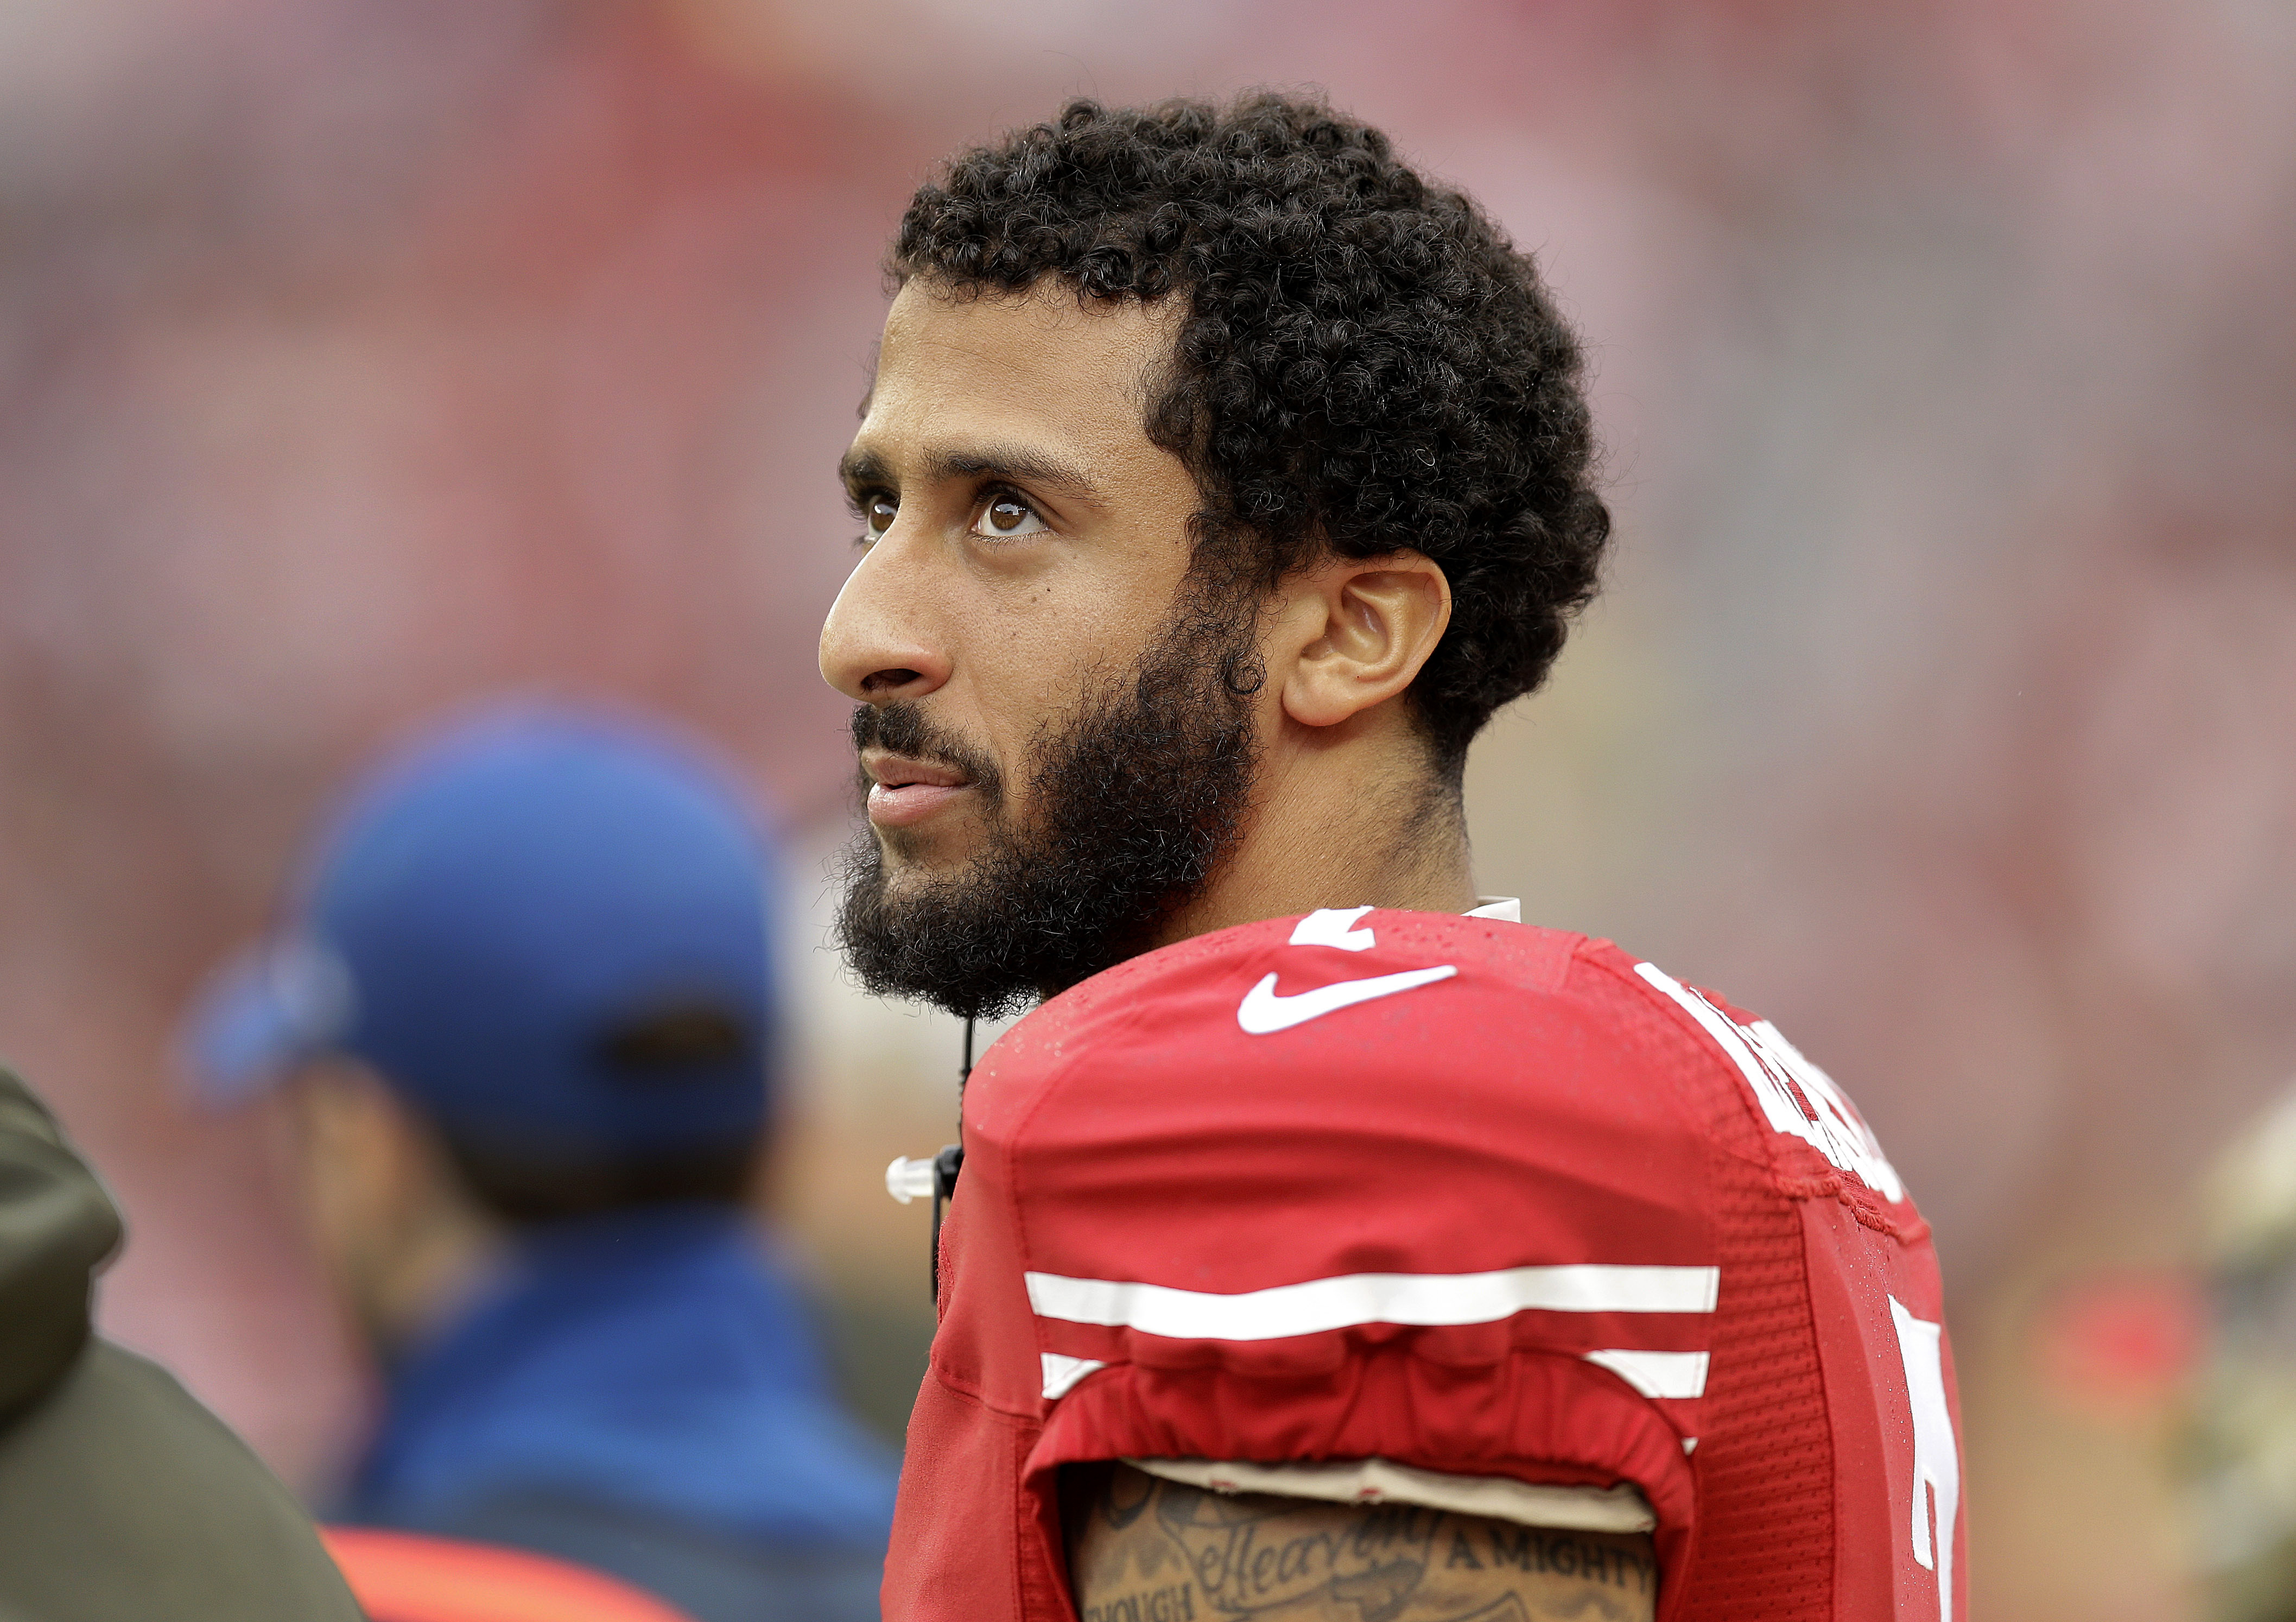 FILE - In this Nov. 8, 2015, file photo, San Francisco 49ers quarterback Colin Kaepernick (7) stands on the sideline during the first half of an NFL football game against the Atlanta Falcons in Santa Clara, Calif. 49ers quarterback Colin Kaepernick has a